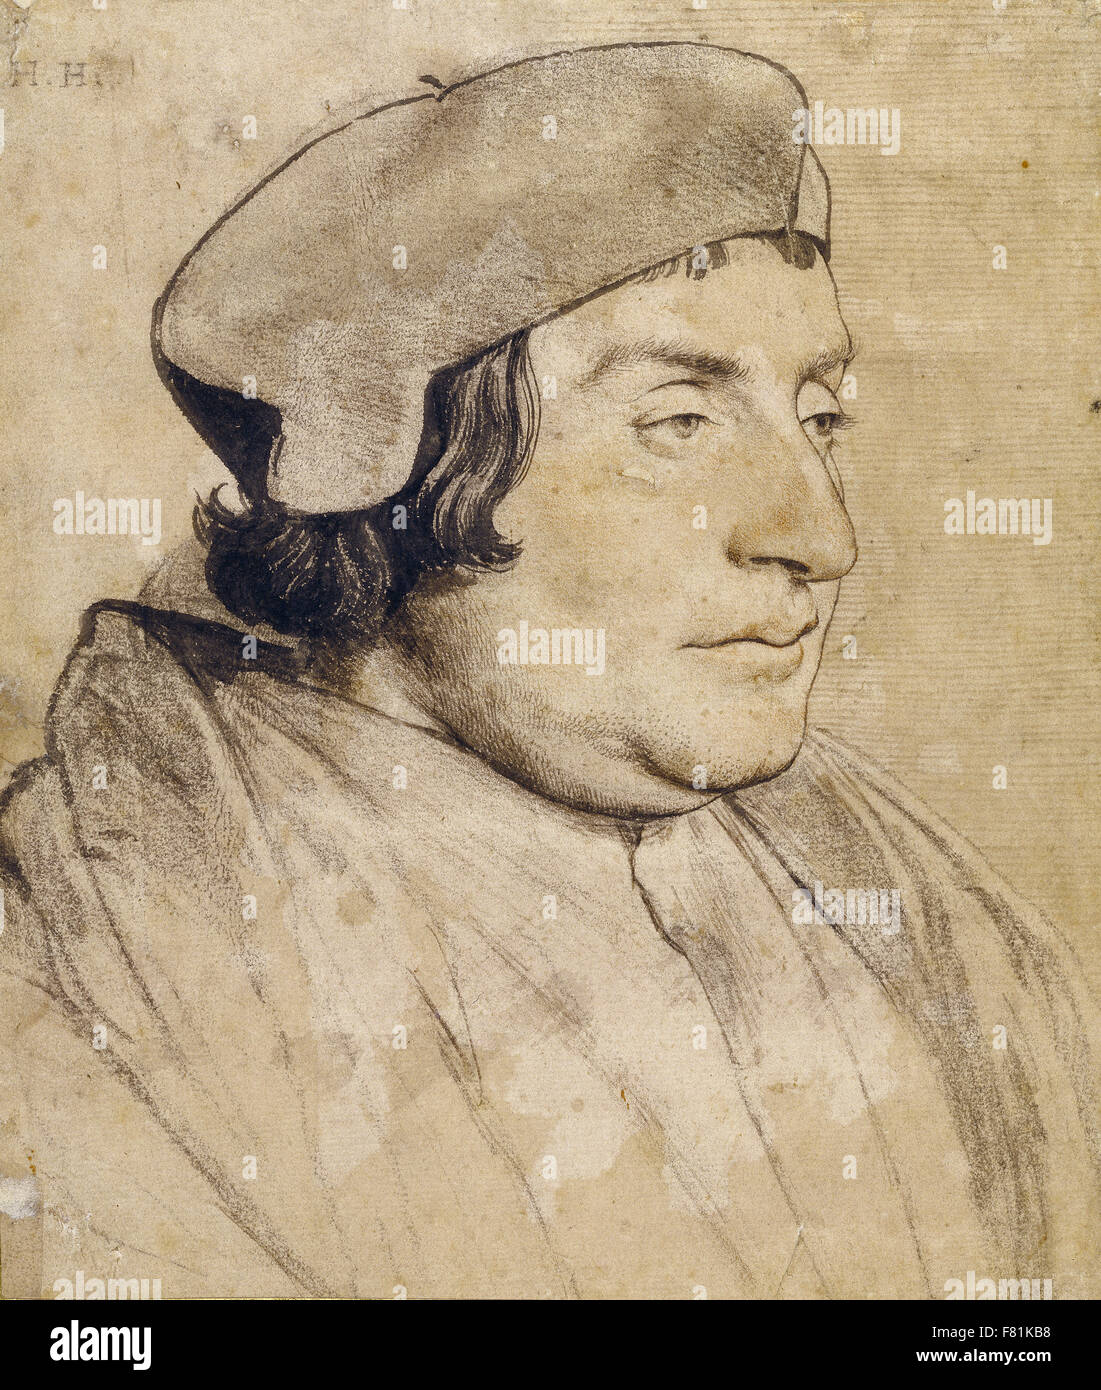 Hans Holbein the Younger - Portrait of a Scholar or Cleric - Stock Image